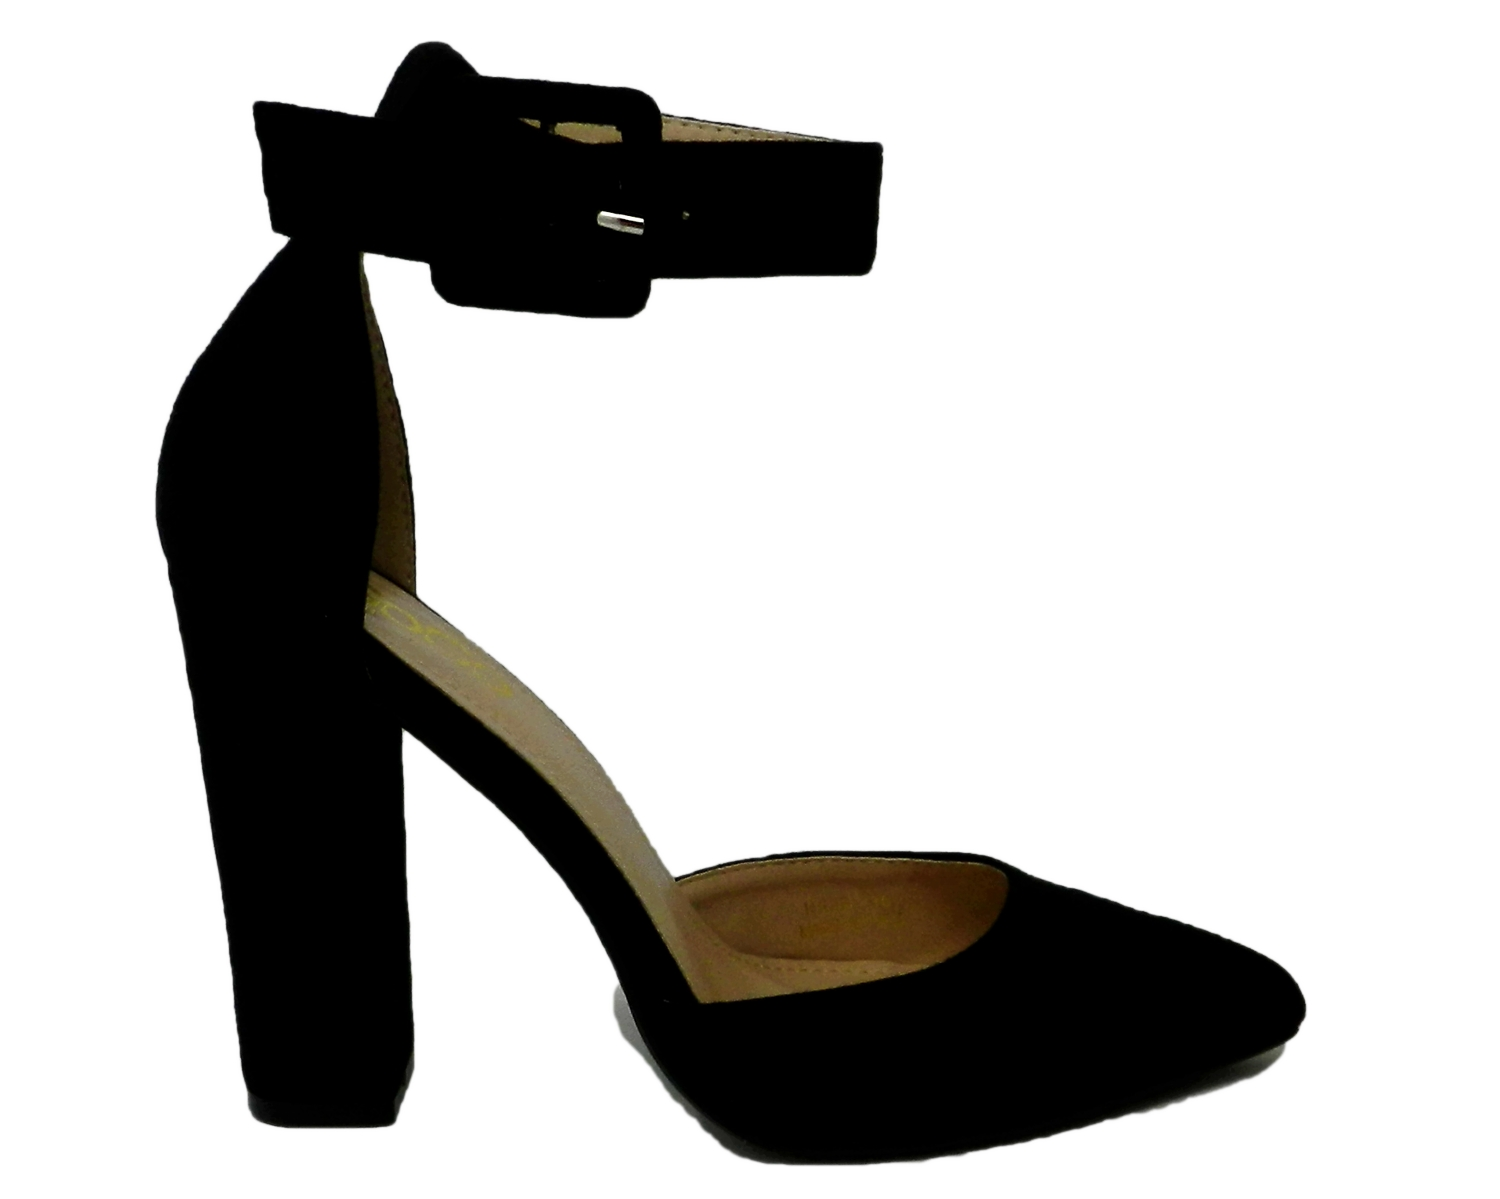 Refined décolleté in the elongated tip in faux suede - black